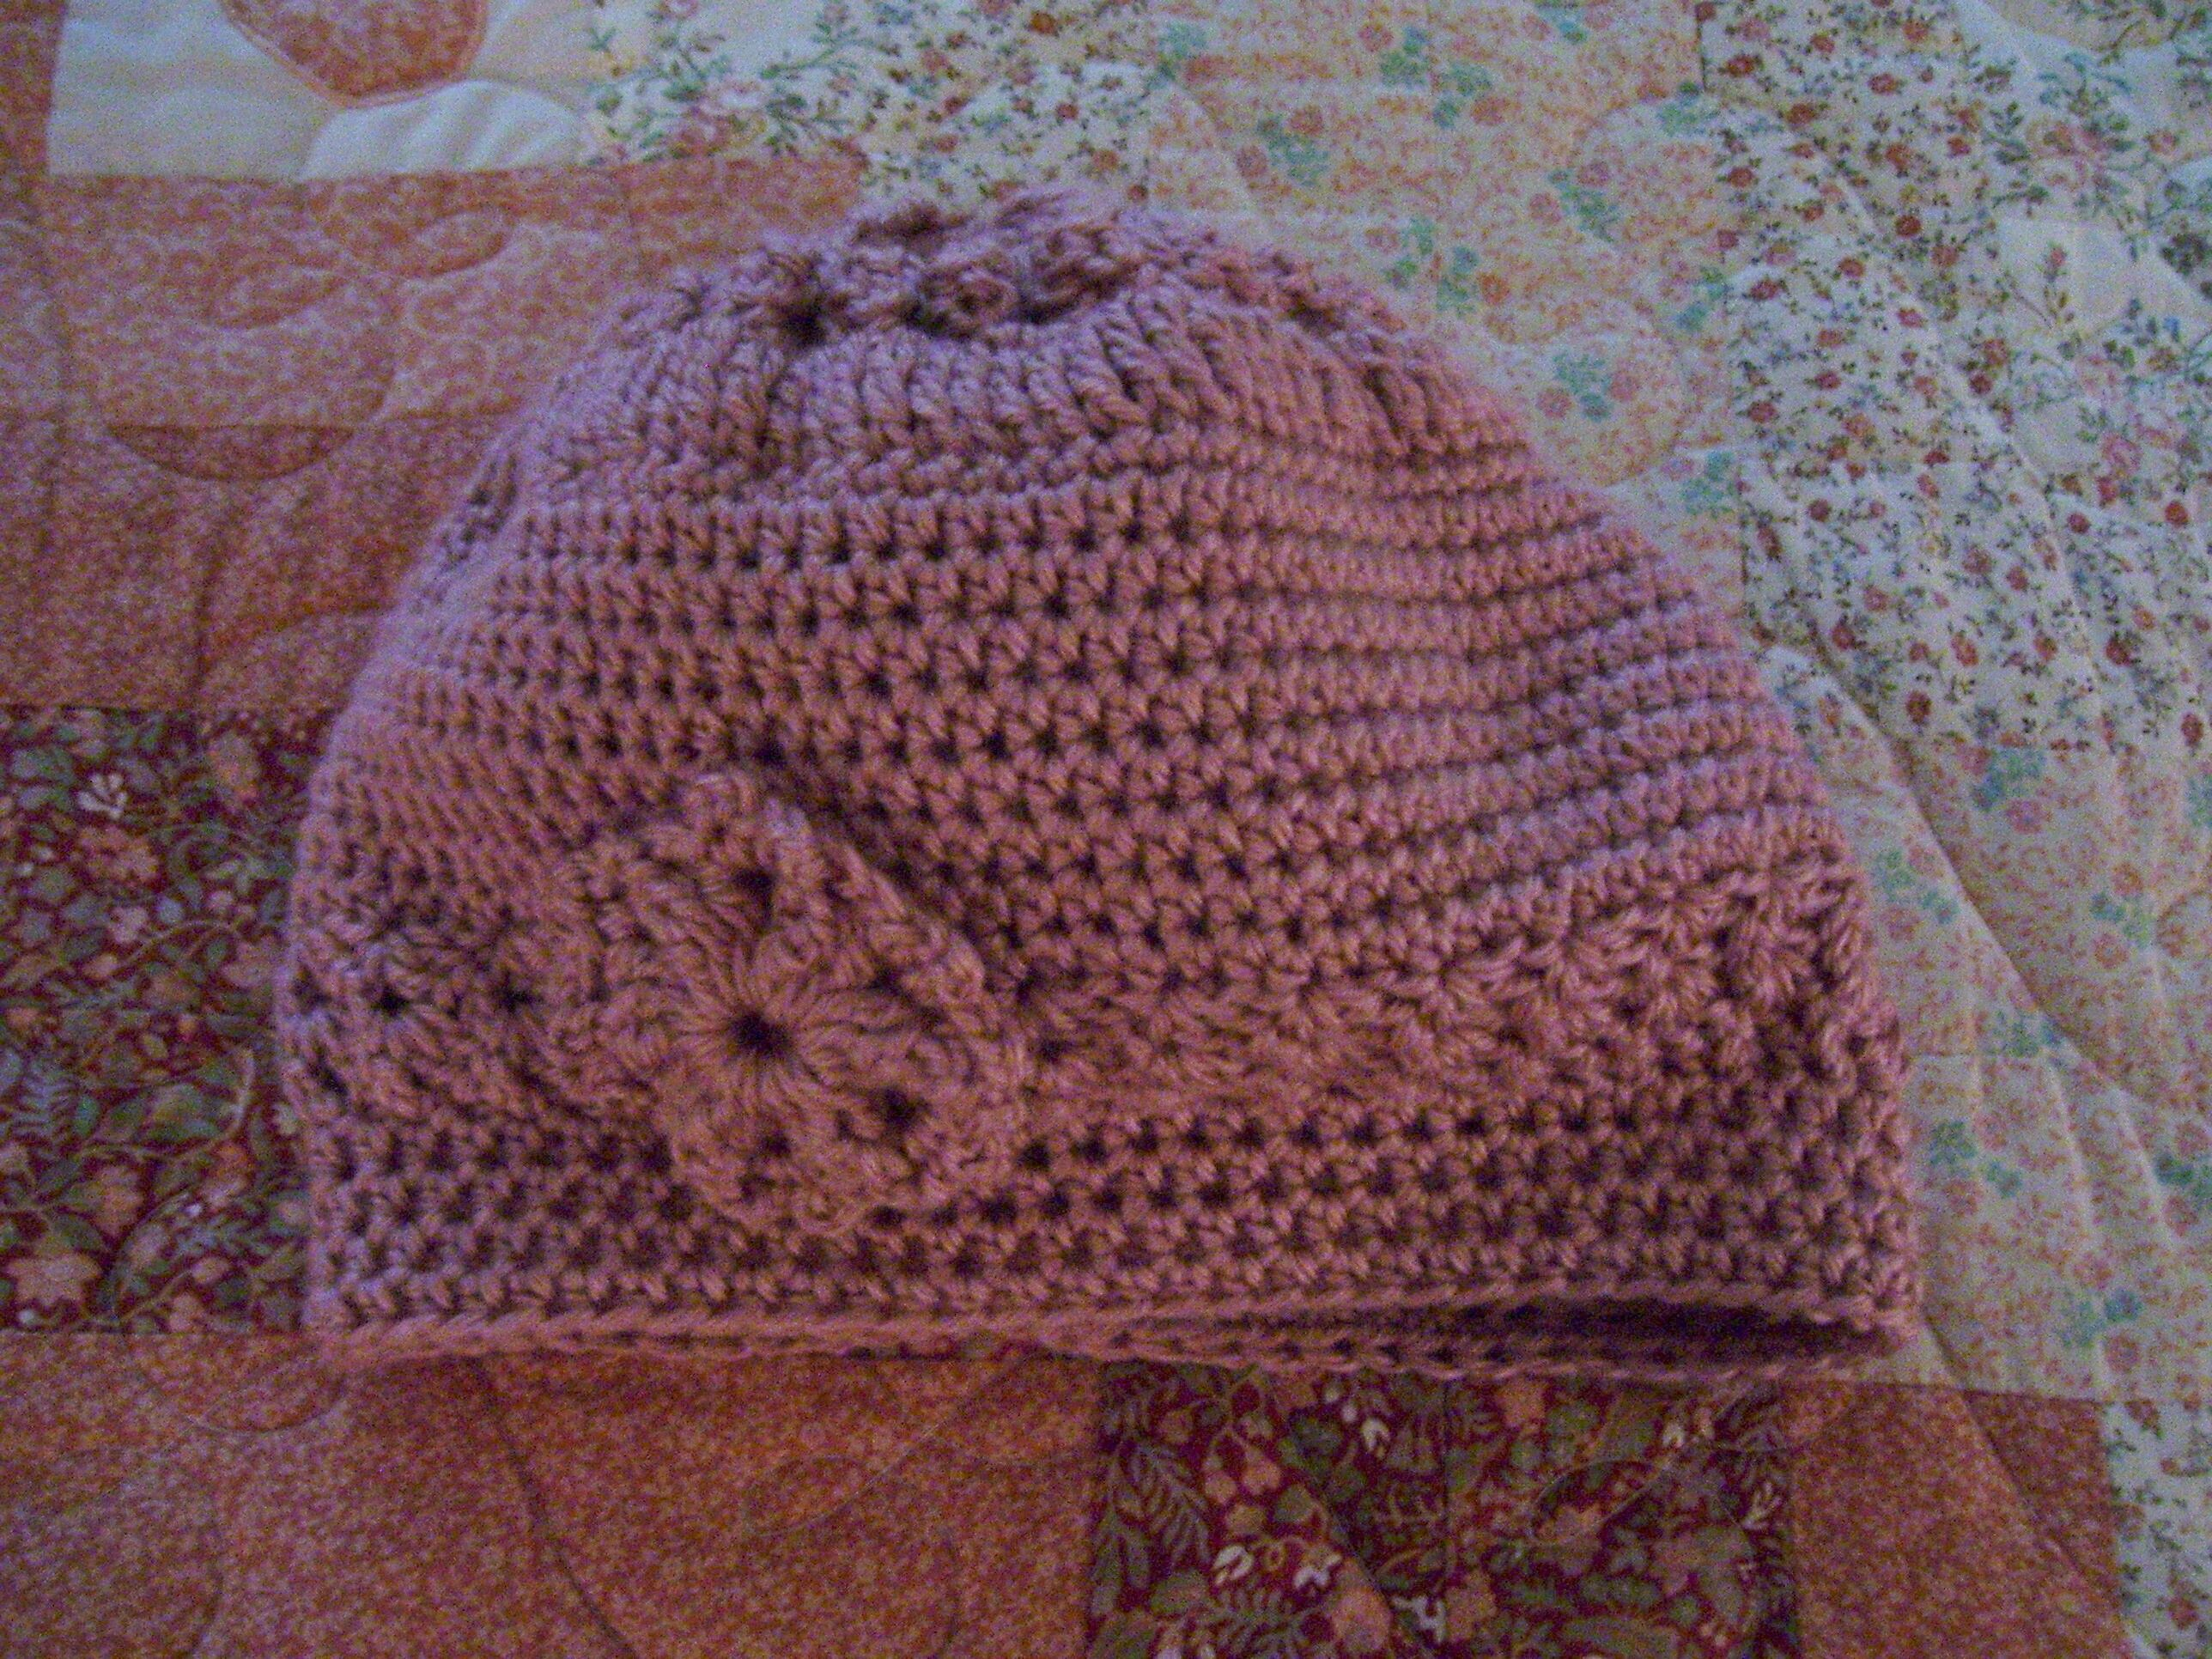 ... completed Chemo cap #2 - front view CROCHET PATTERNS Pintere